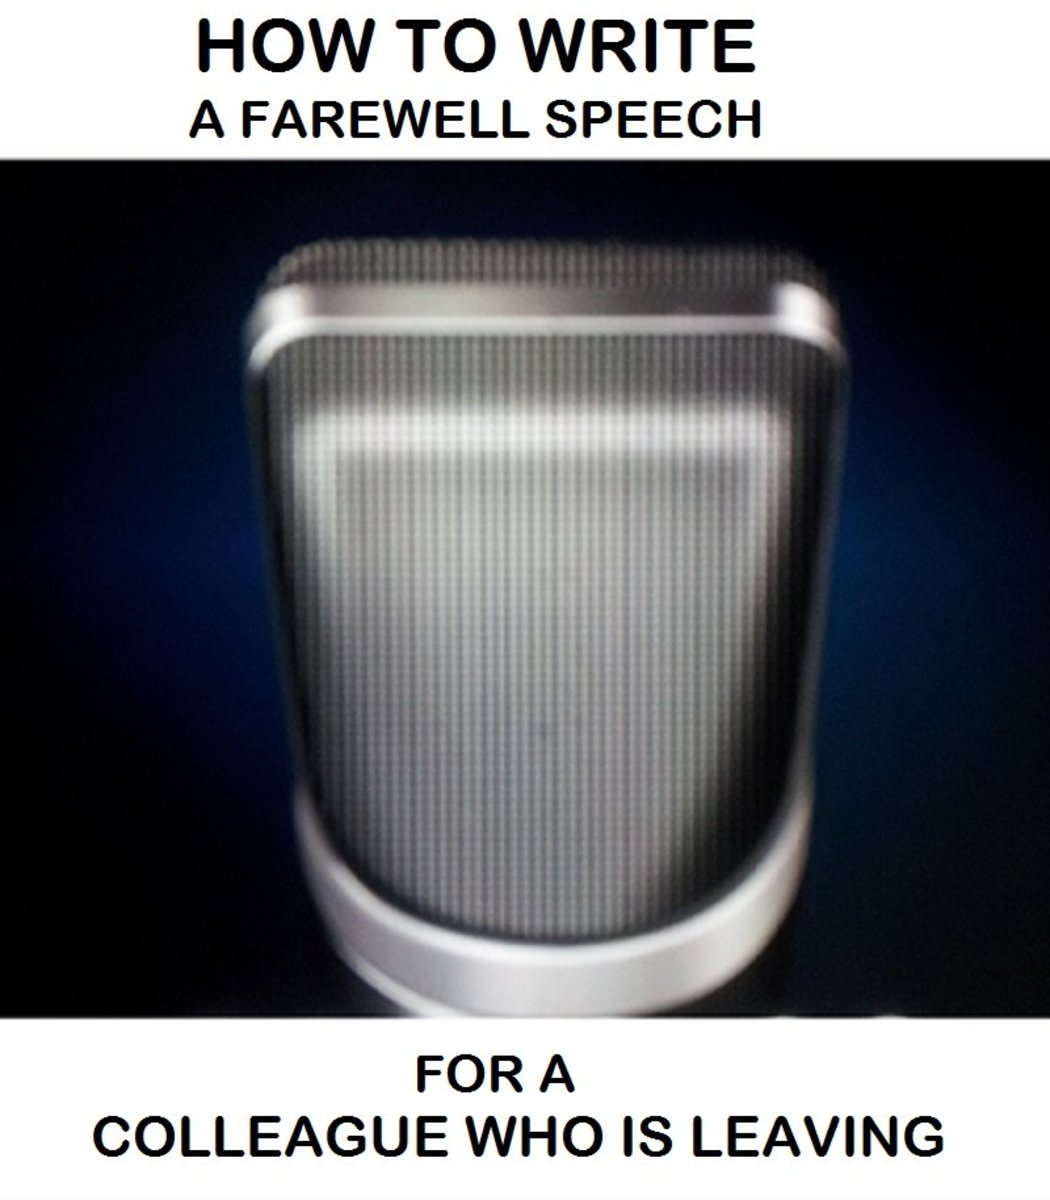 Useful Guide for How to Write a Farewell Speech for a Colleague